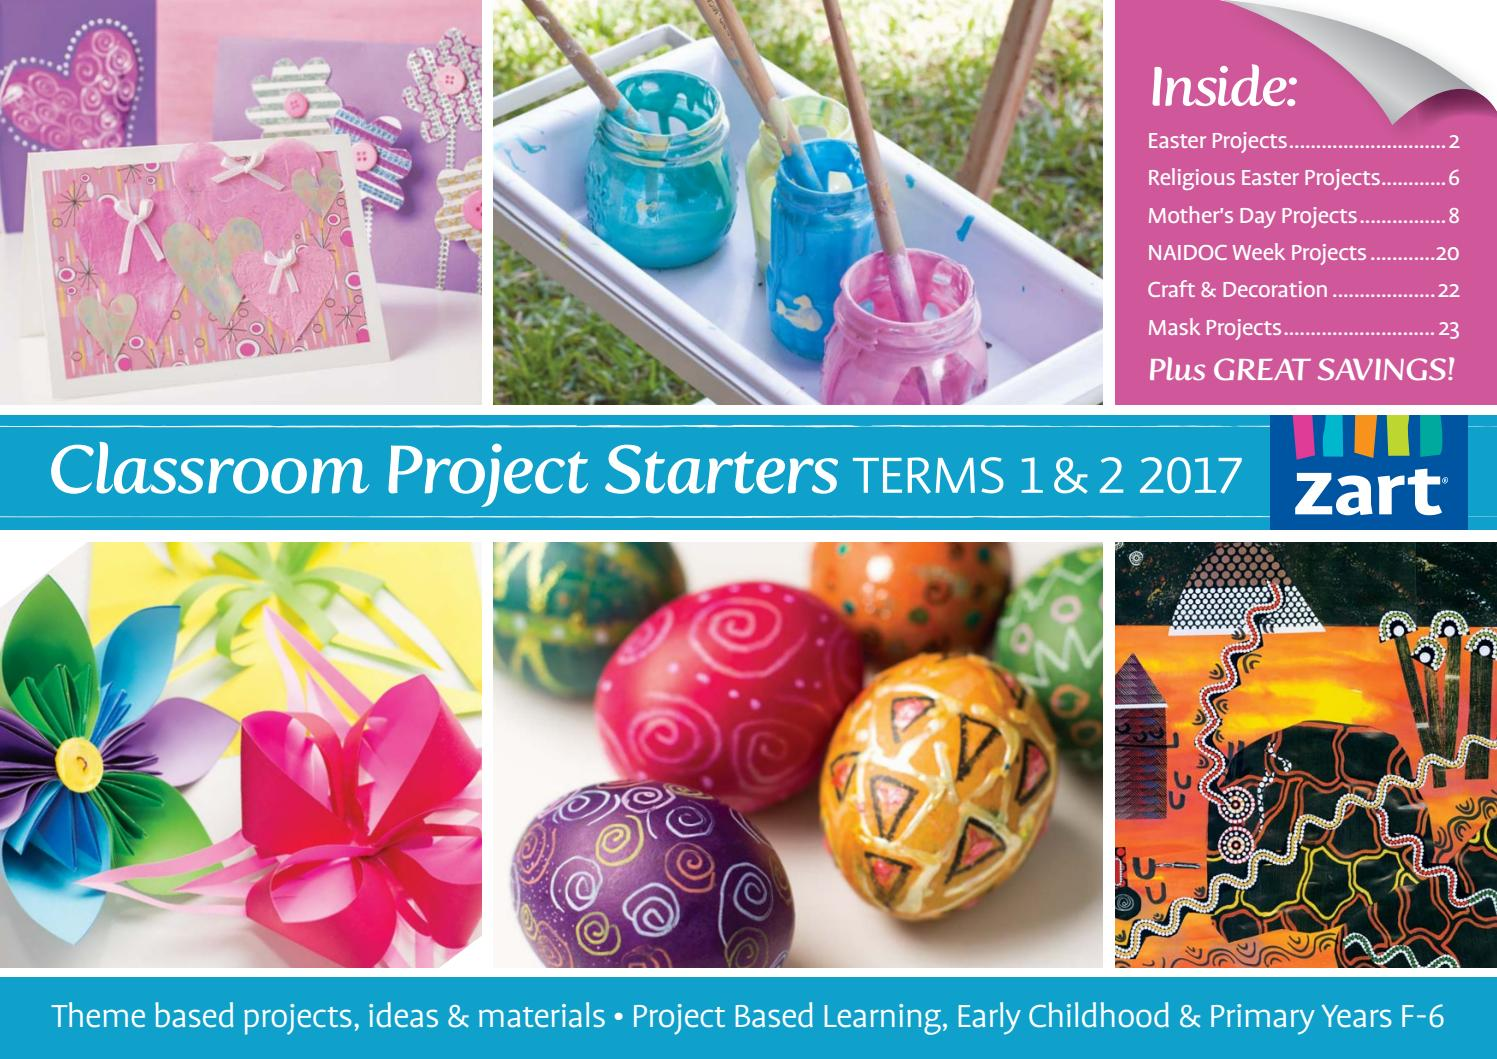 Classroom Project Starters Terms 1 2 2017 By Zart Art Craft And